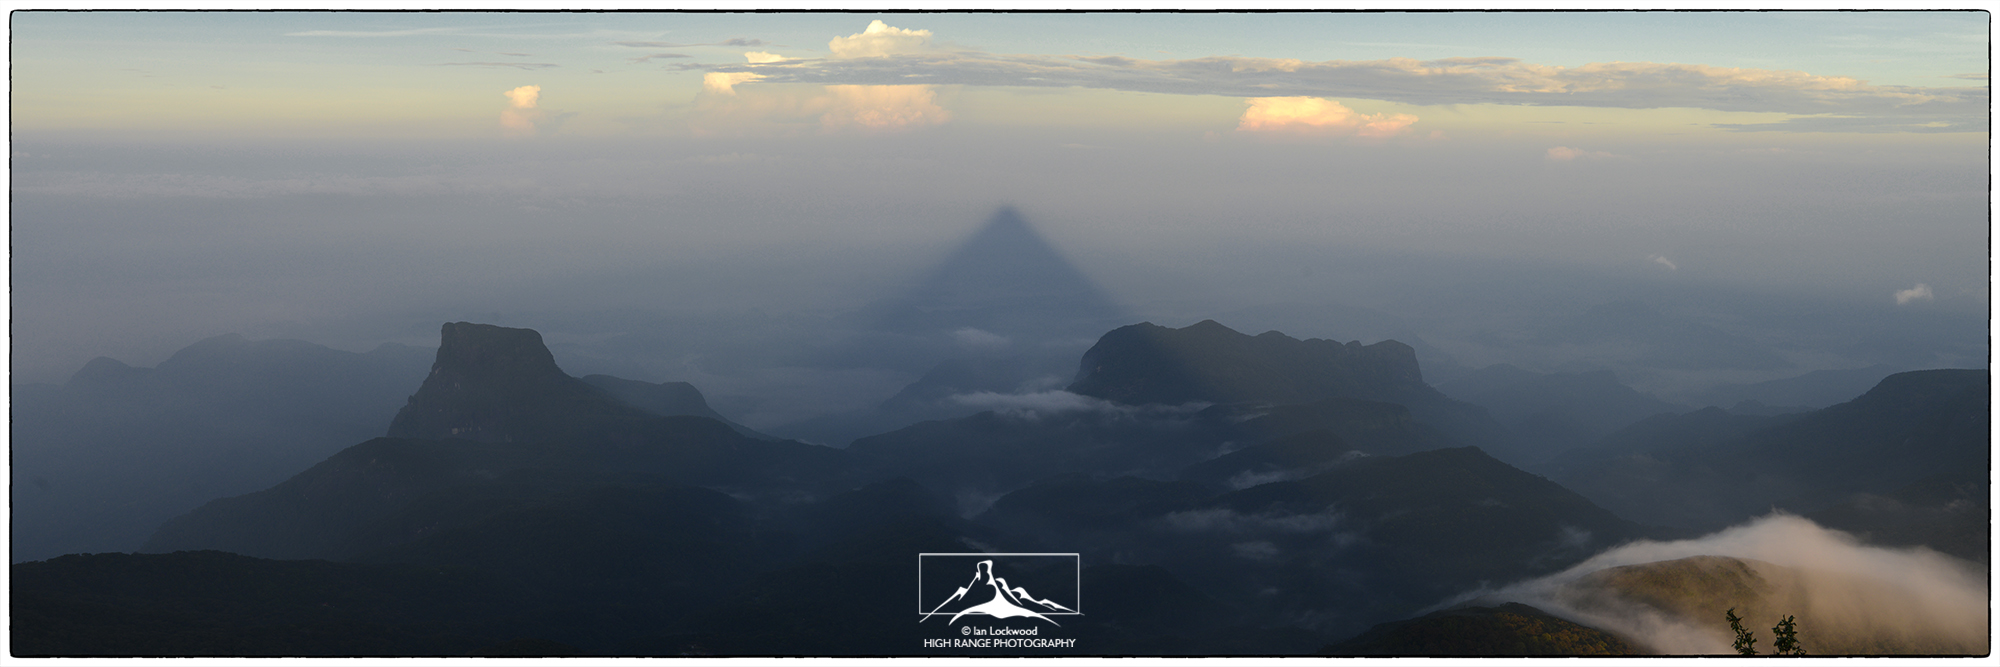 Image result for AGASTHYA MOUNTAIN  CONICAL SHAPE FROM A DISTANCE